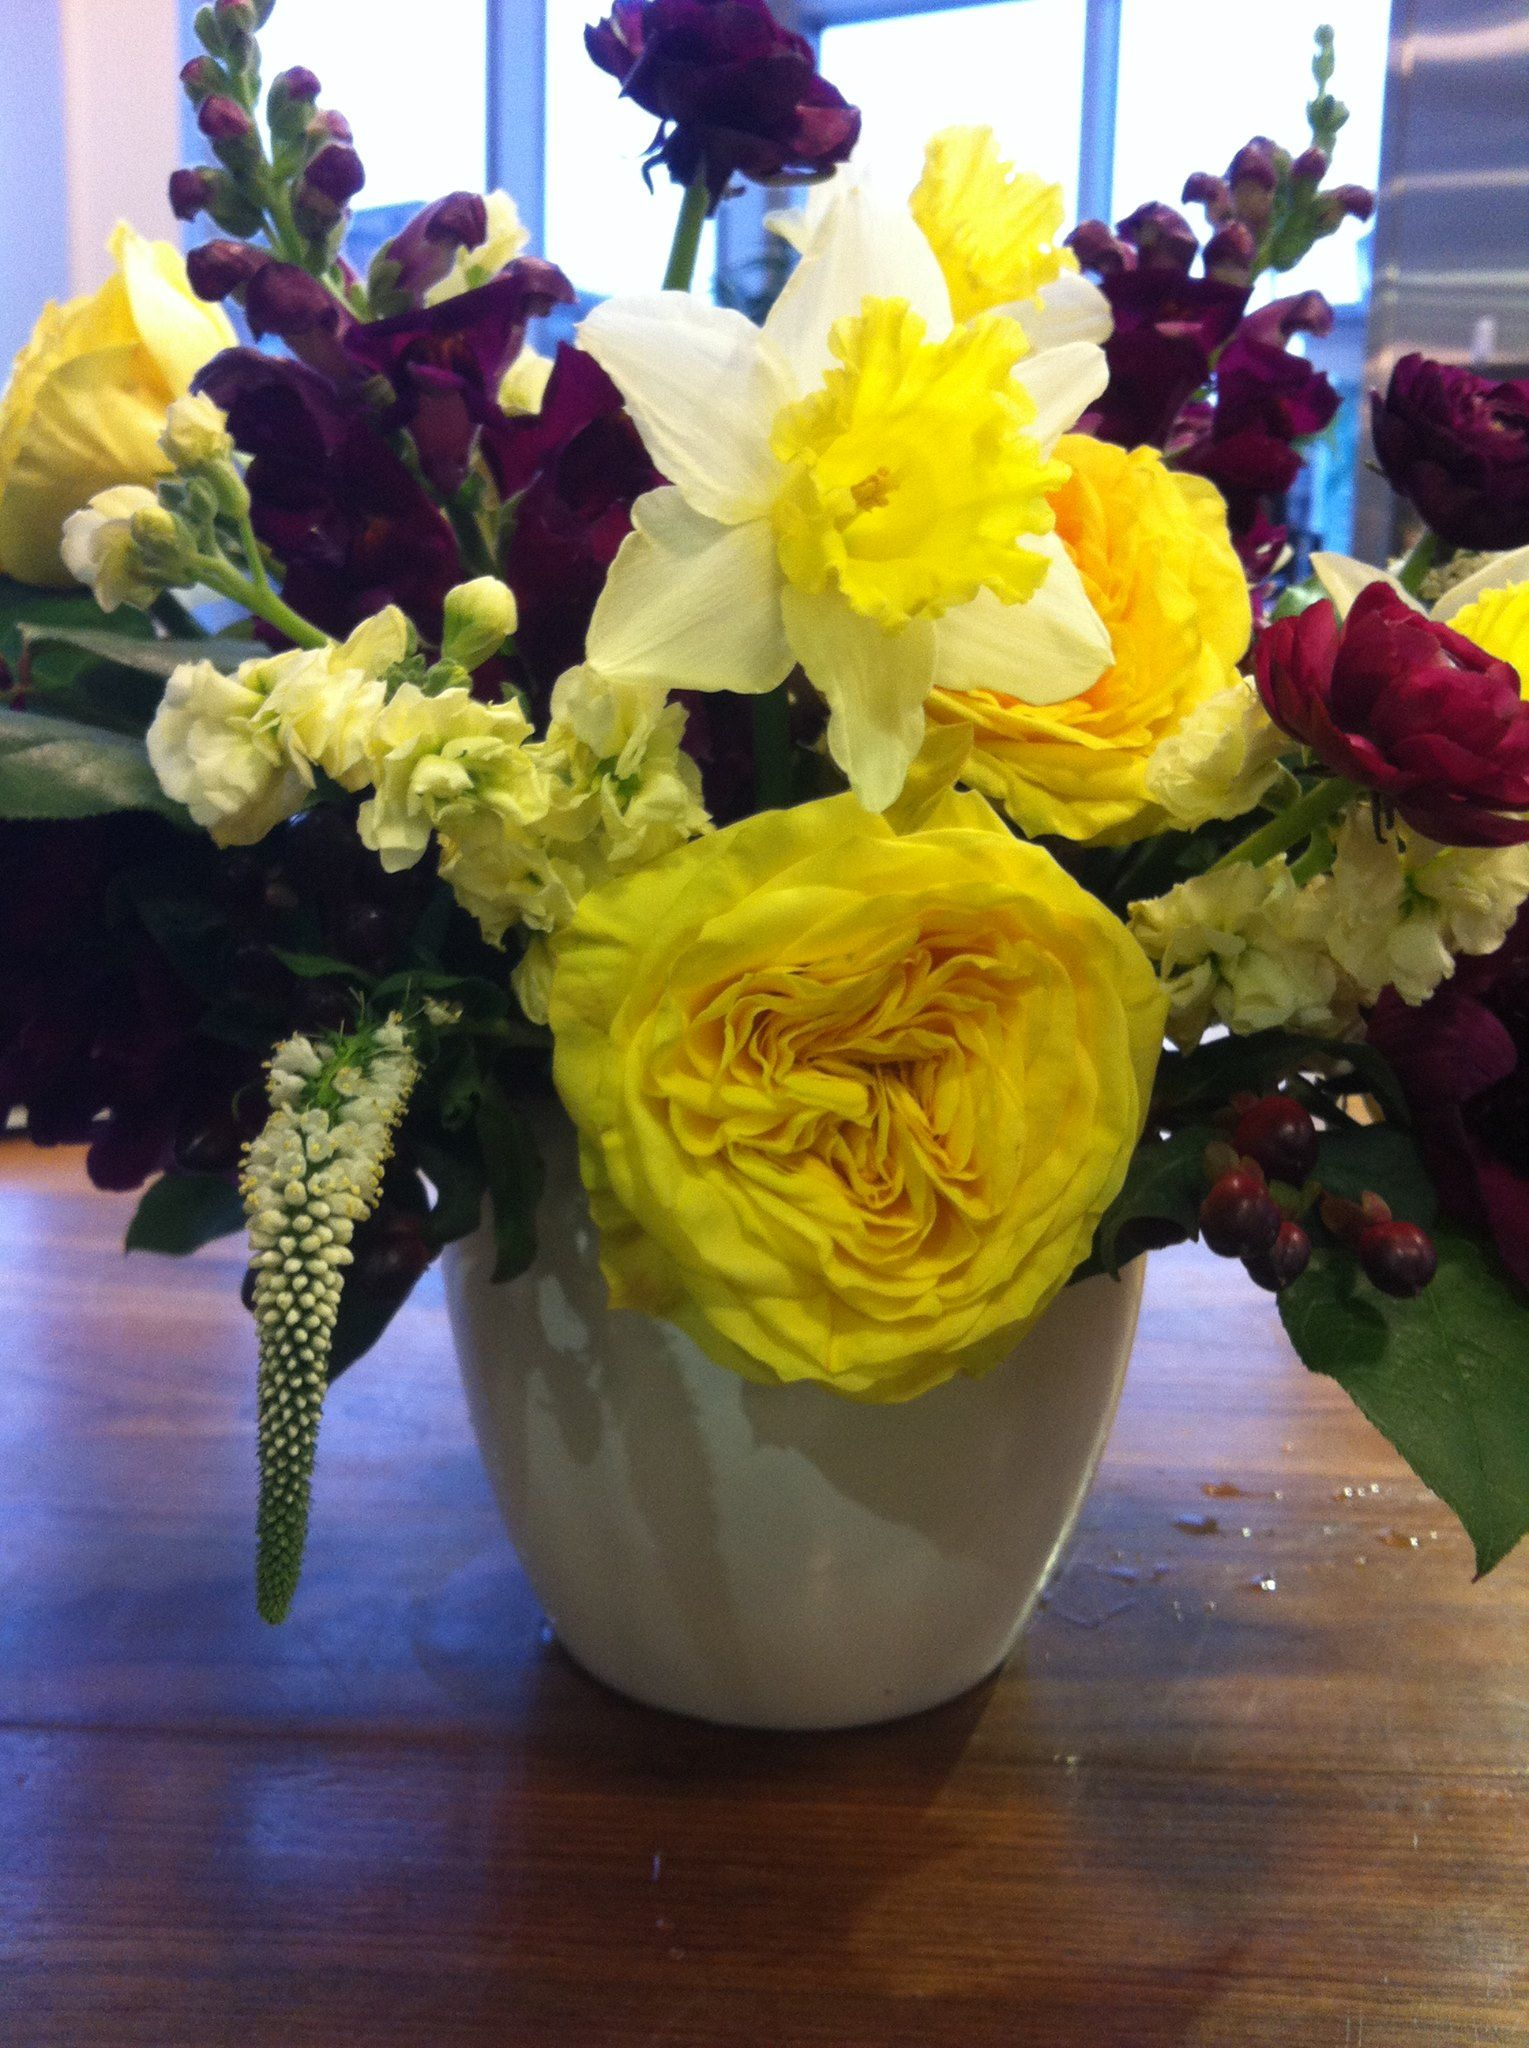 Yellow Roses Mean Friendship And Happiness Give A Friend This